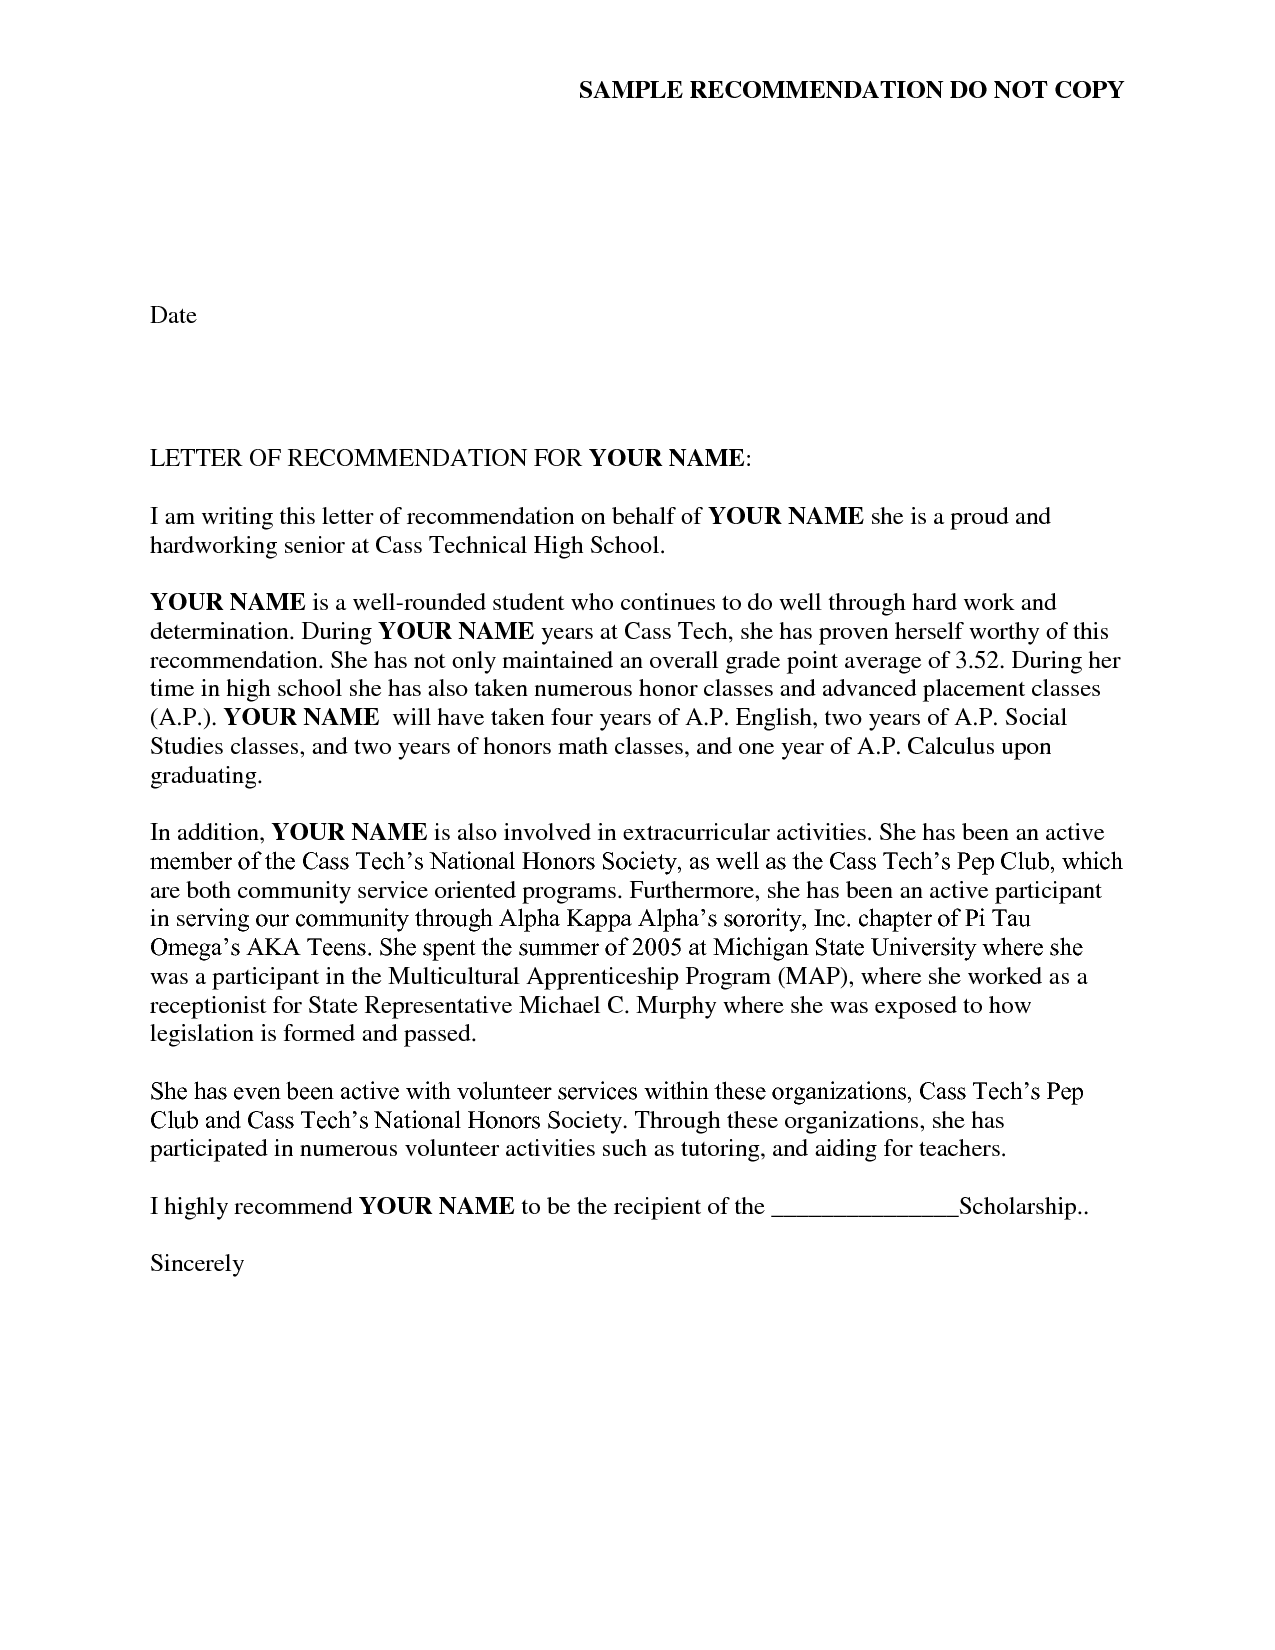 sample letter of recommendation for aka sorority reference letter of recommendation sample sample alpha 24629 | 864e4faadd40b35eca409044777c3954